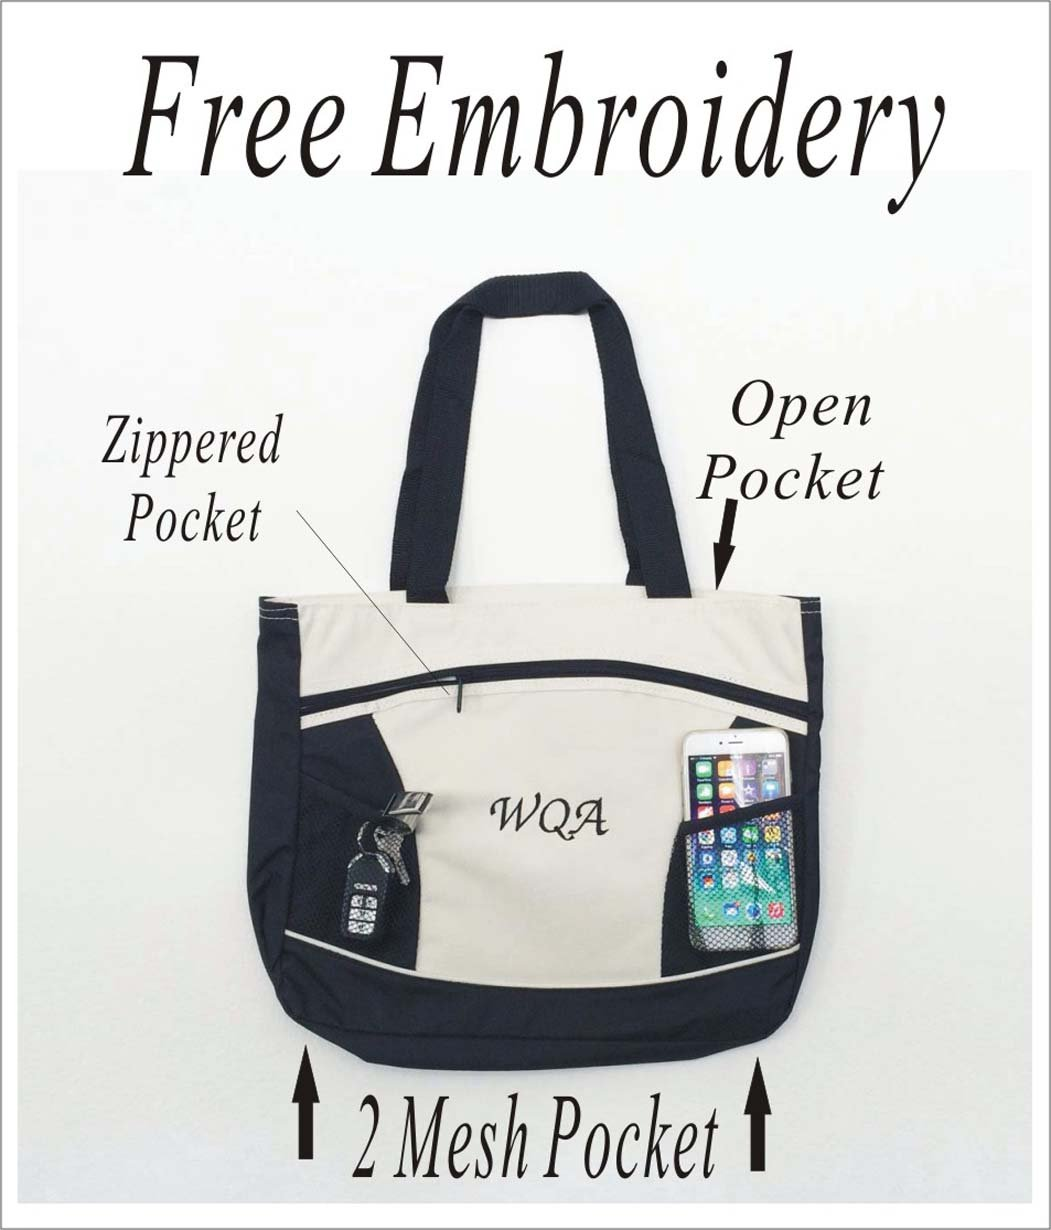 Personalized Bride tote bag-Wedding Monogrammed,Initialed tote bag-Free Embroidery